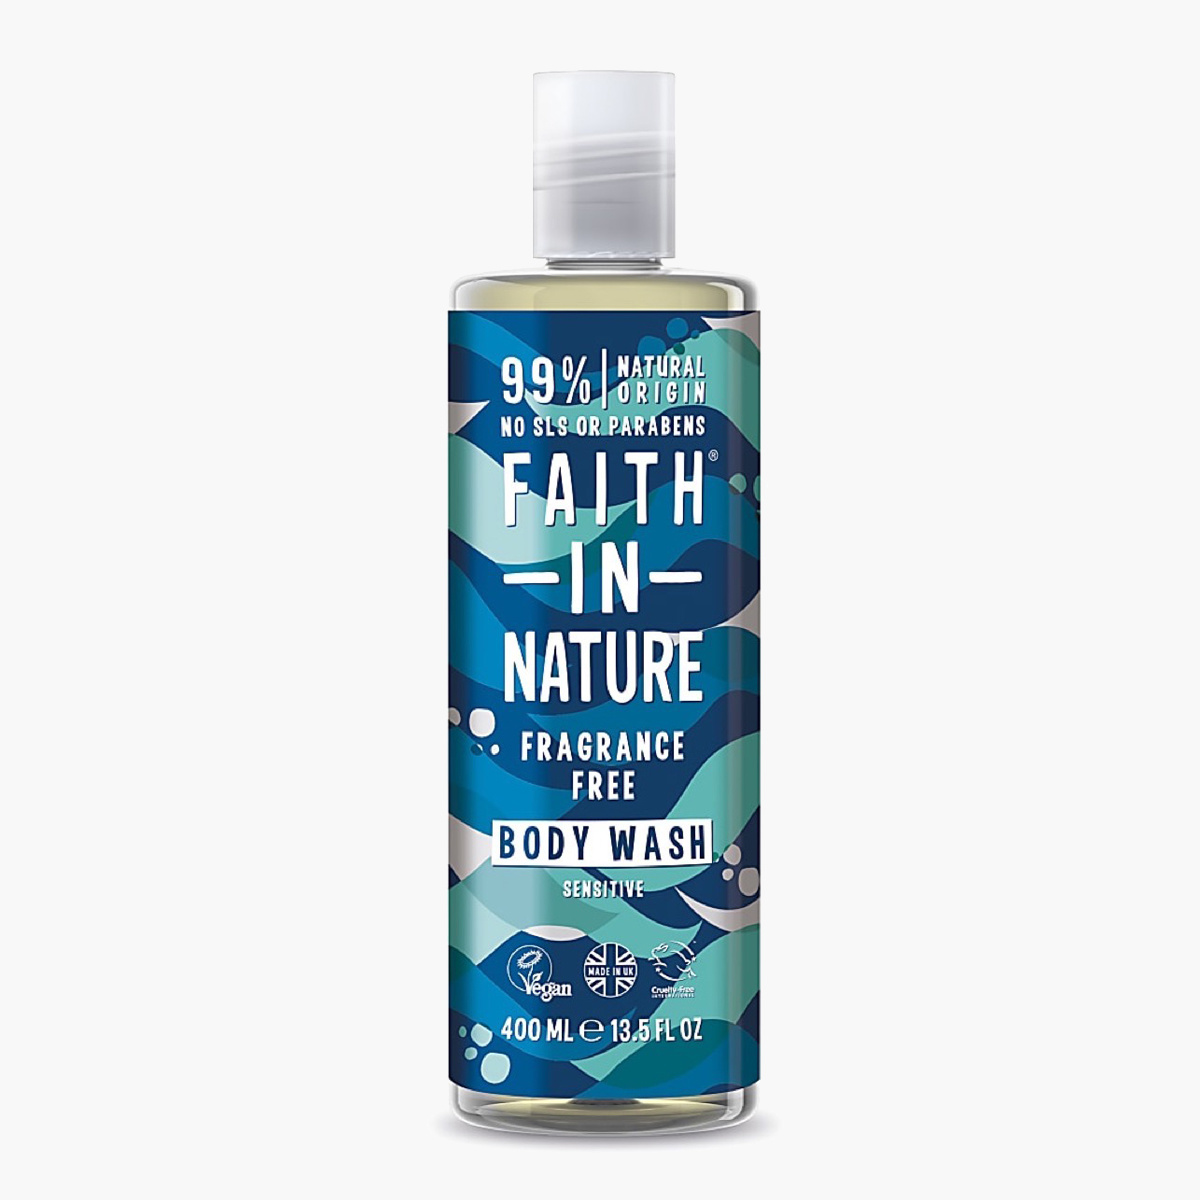 Faith in Nature Fragrancefree Body Wash - 400 ml